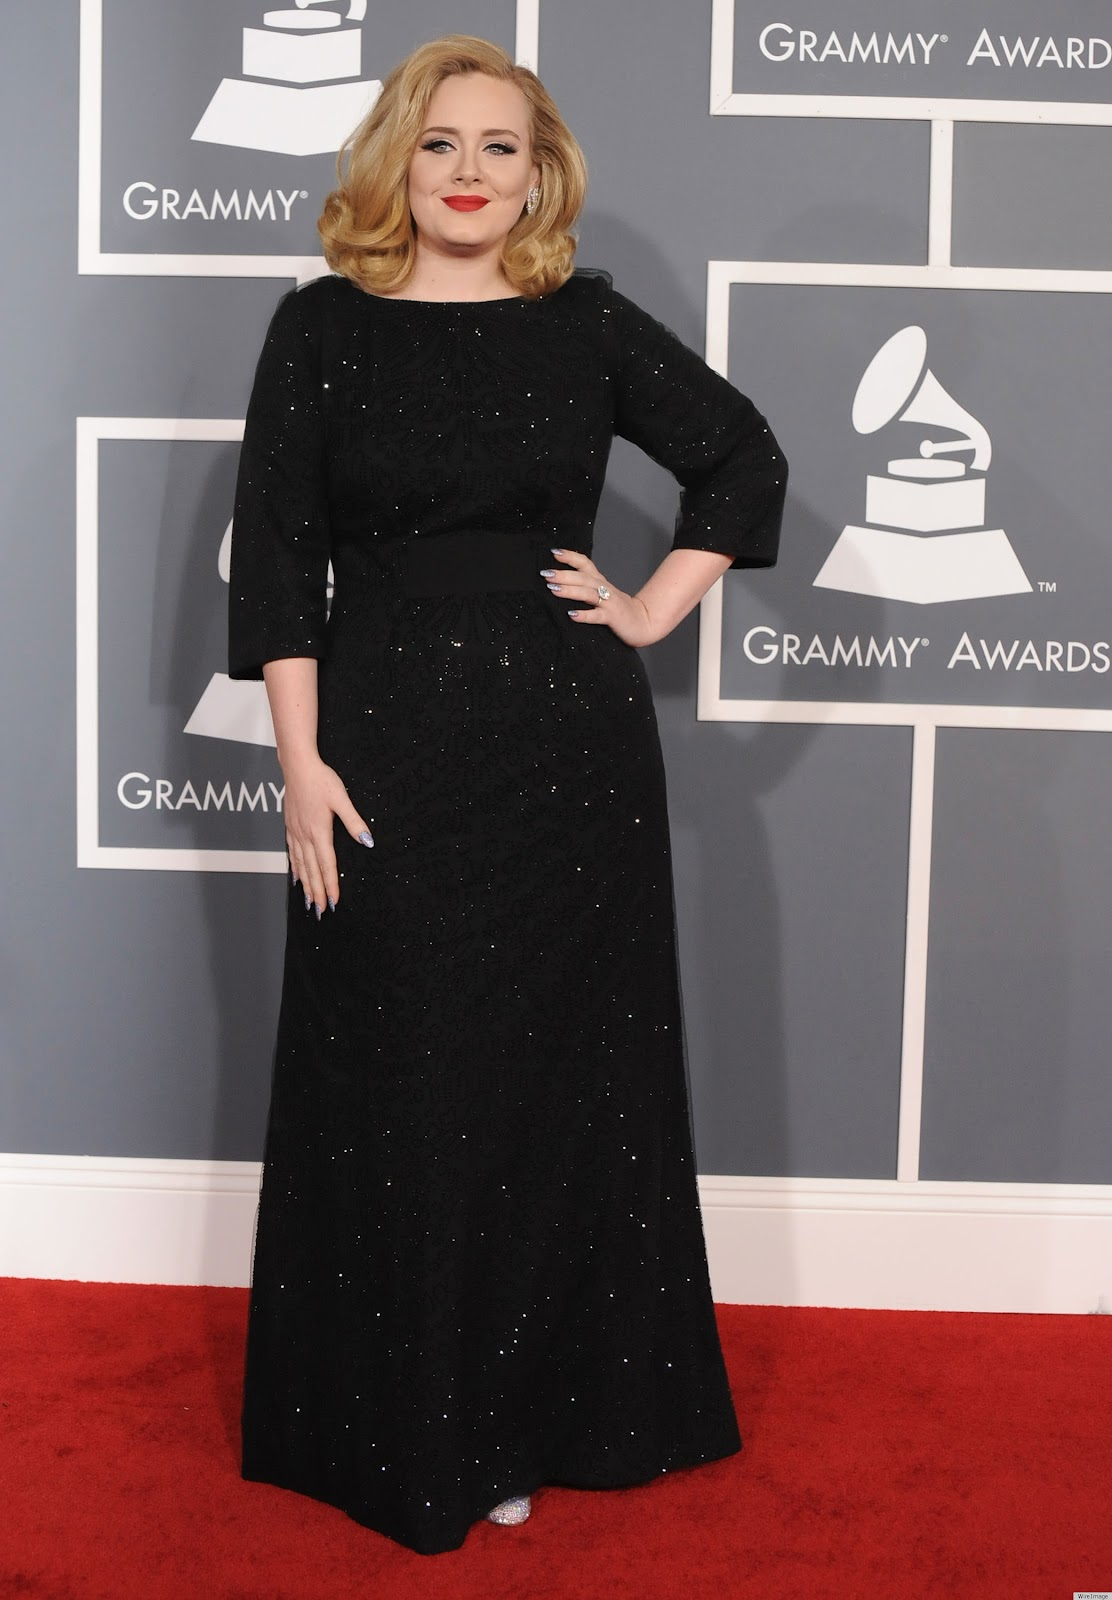 http://4.bp.blogspot.com/-cnf2NgKw5Ds/Tzuw4ZMsfAI/AAAAAAAAArU/sp2ZSnBudAk/s1600/ADELE-GRAMMYS-2012-RED-CARPET-DRESS.jpg